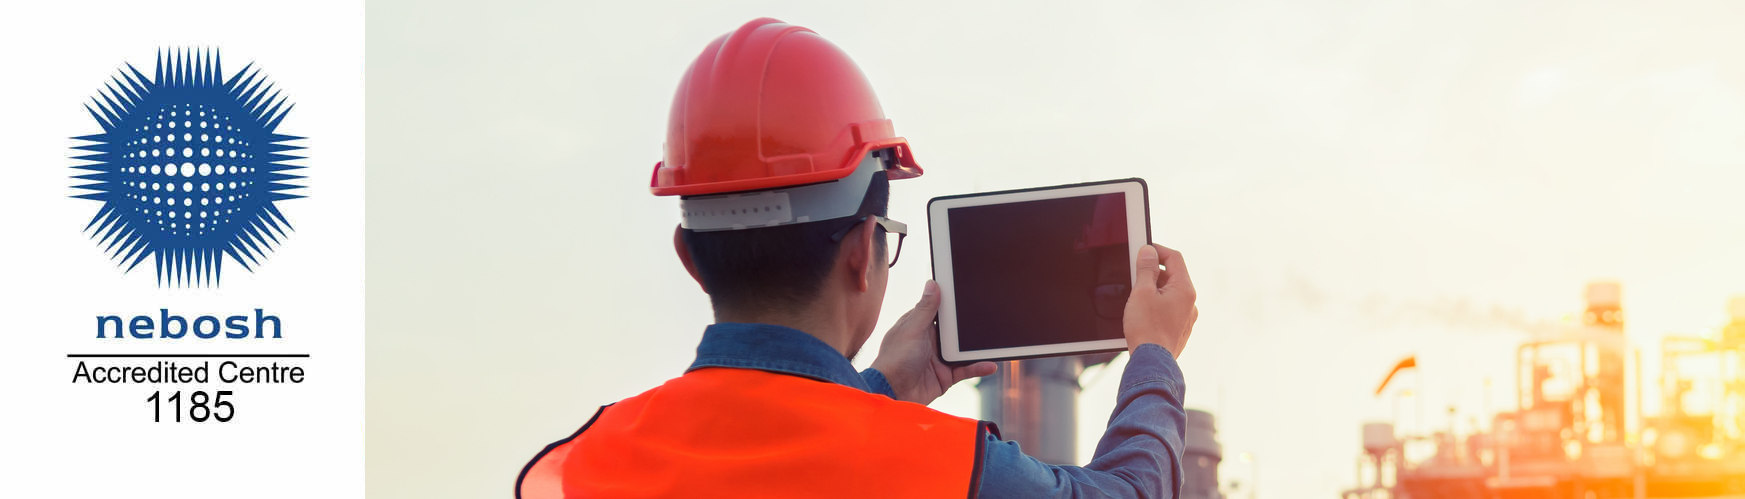 NEBOSH Occupational Health & Safety courses at just £310+VAT